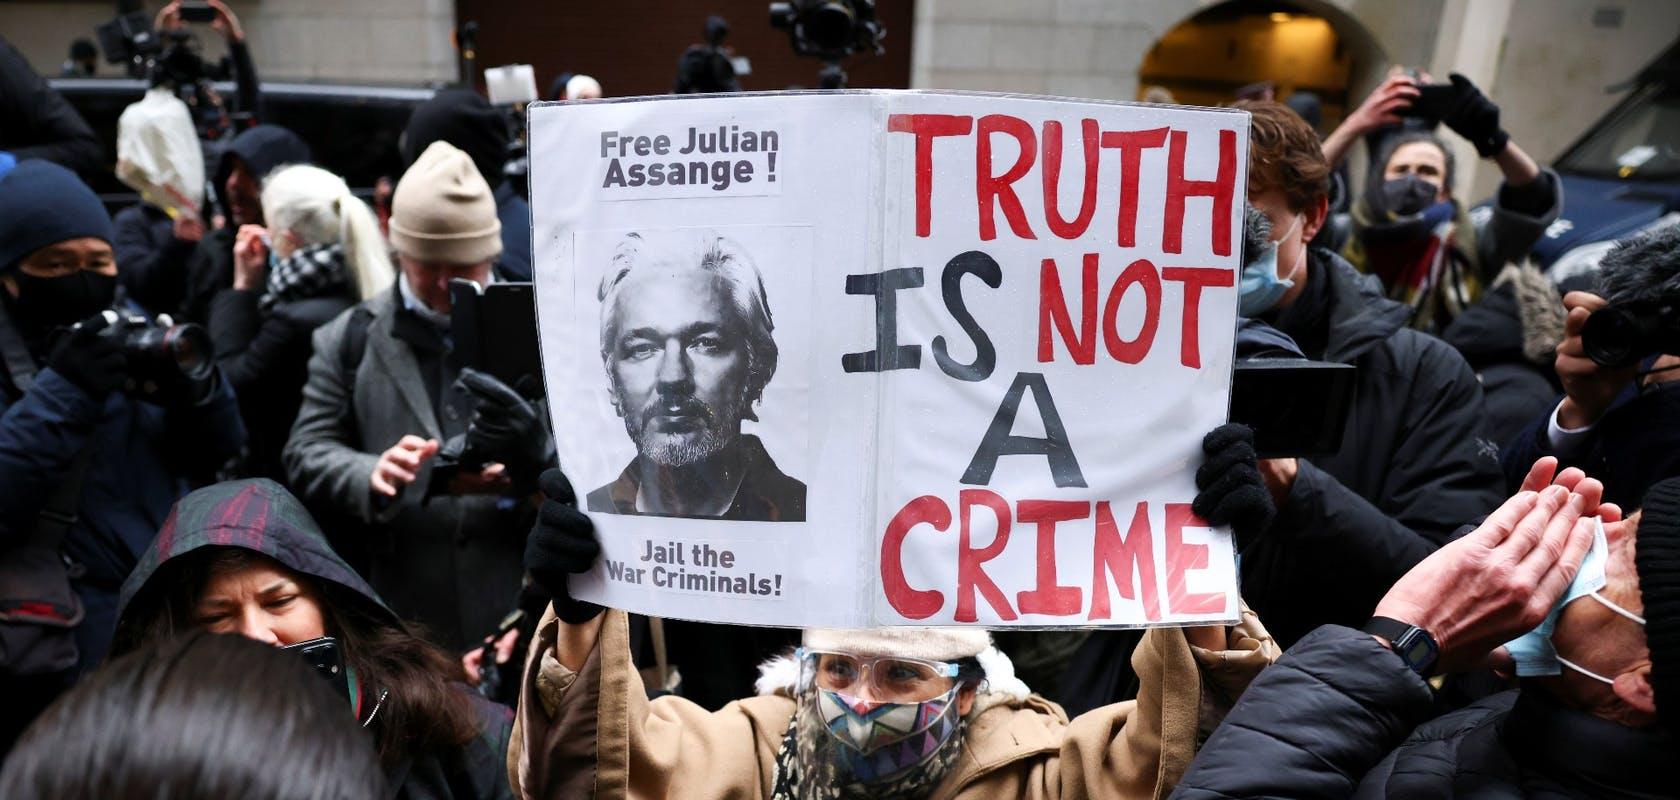 12d675d9-8d8c-4f51-9f02-f0e4ed414c14_julian_assange.jpg?auto=compress,format&rect=0,0,1920,914&w=1680&h=800